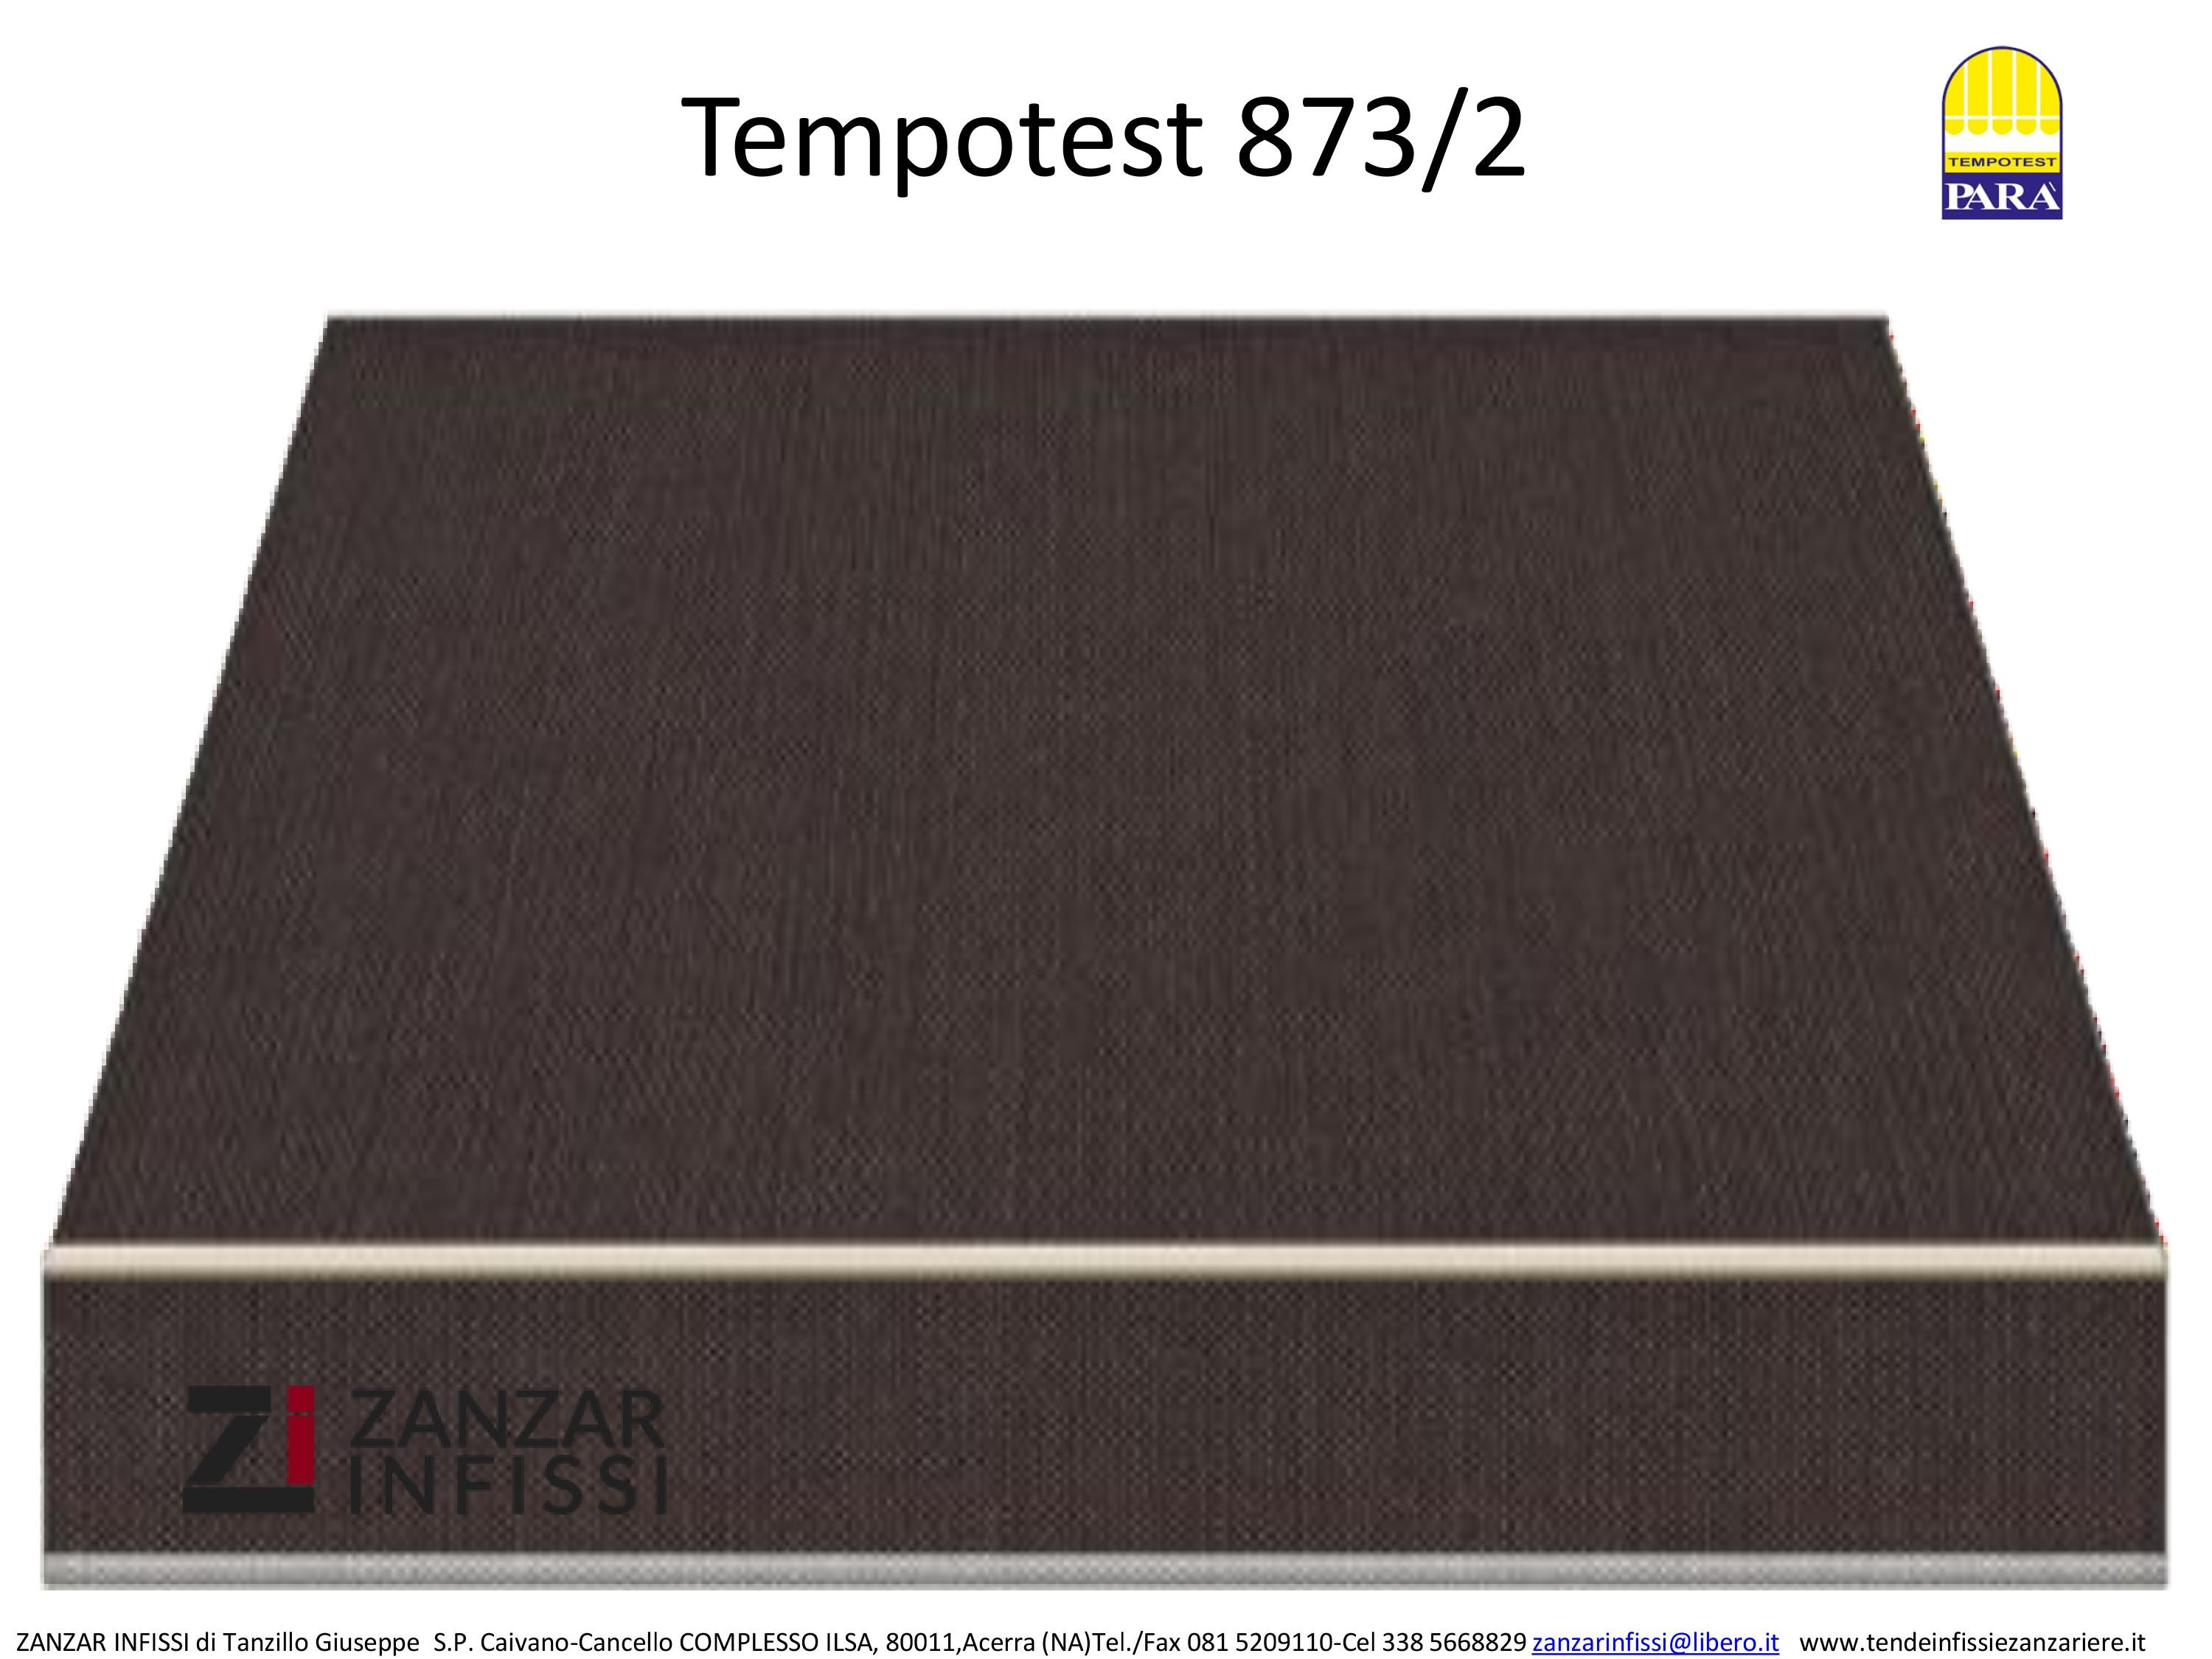 Tempotest 873/2